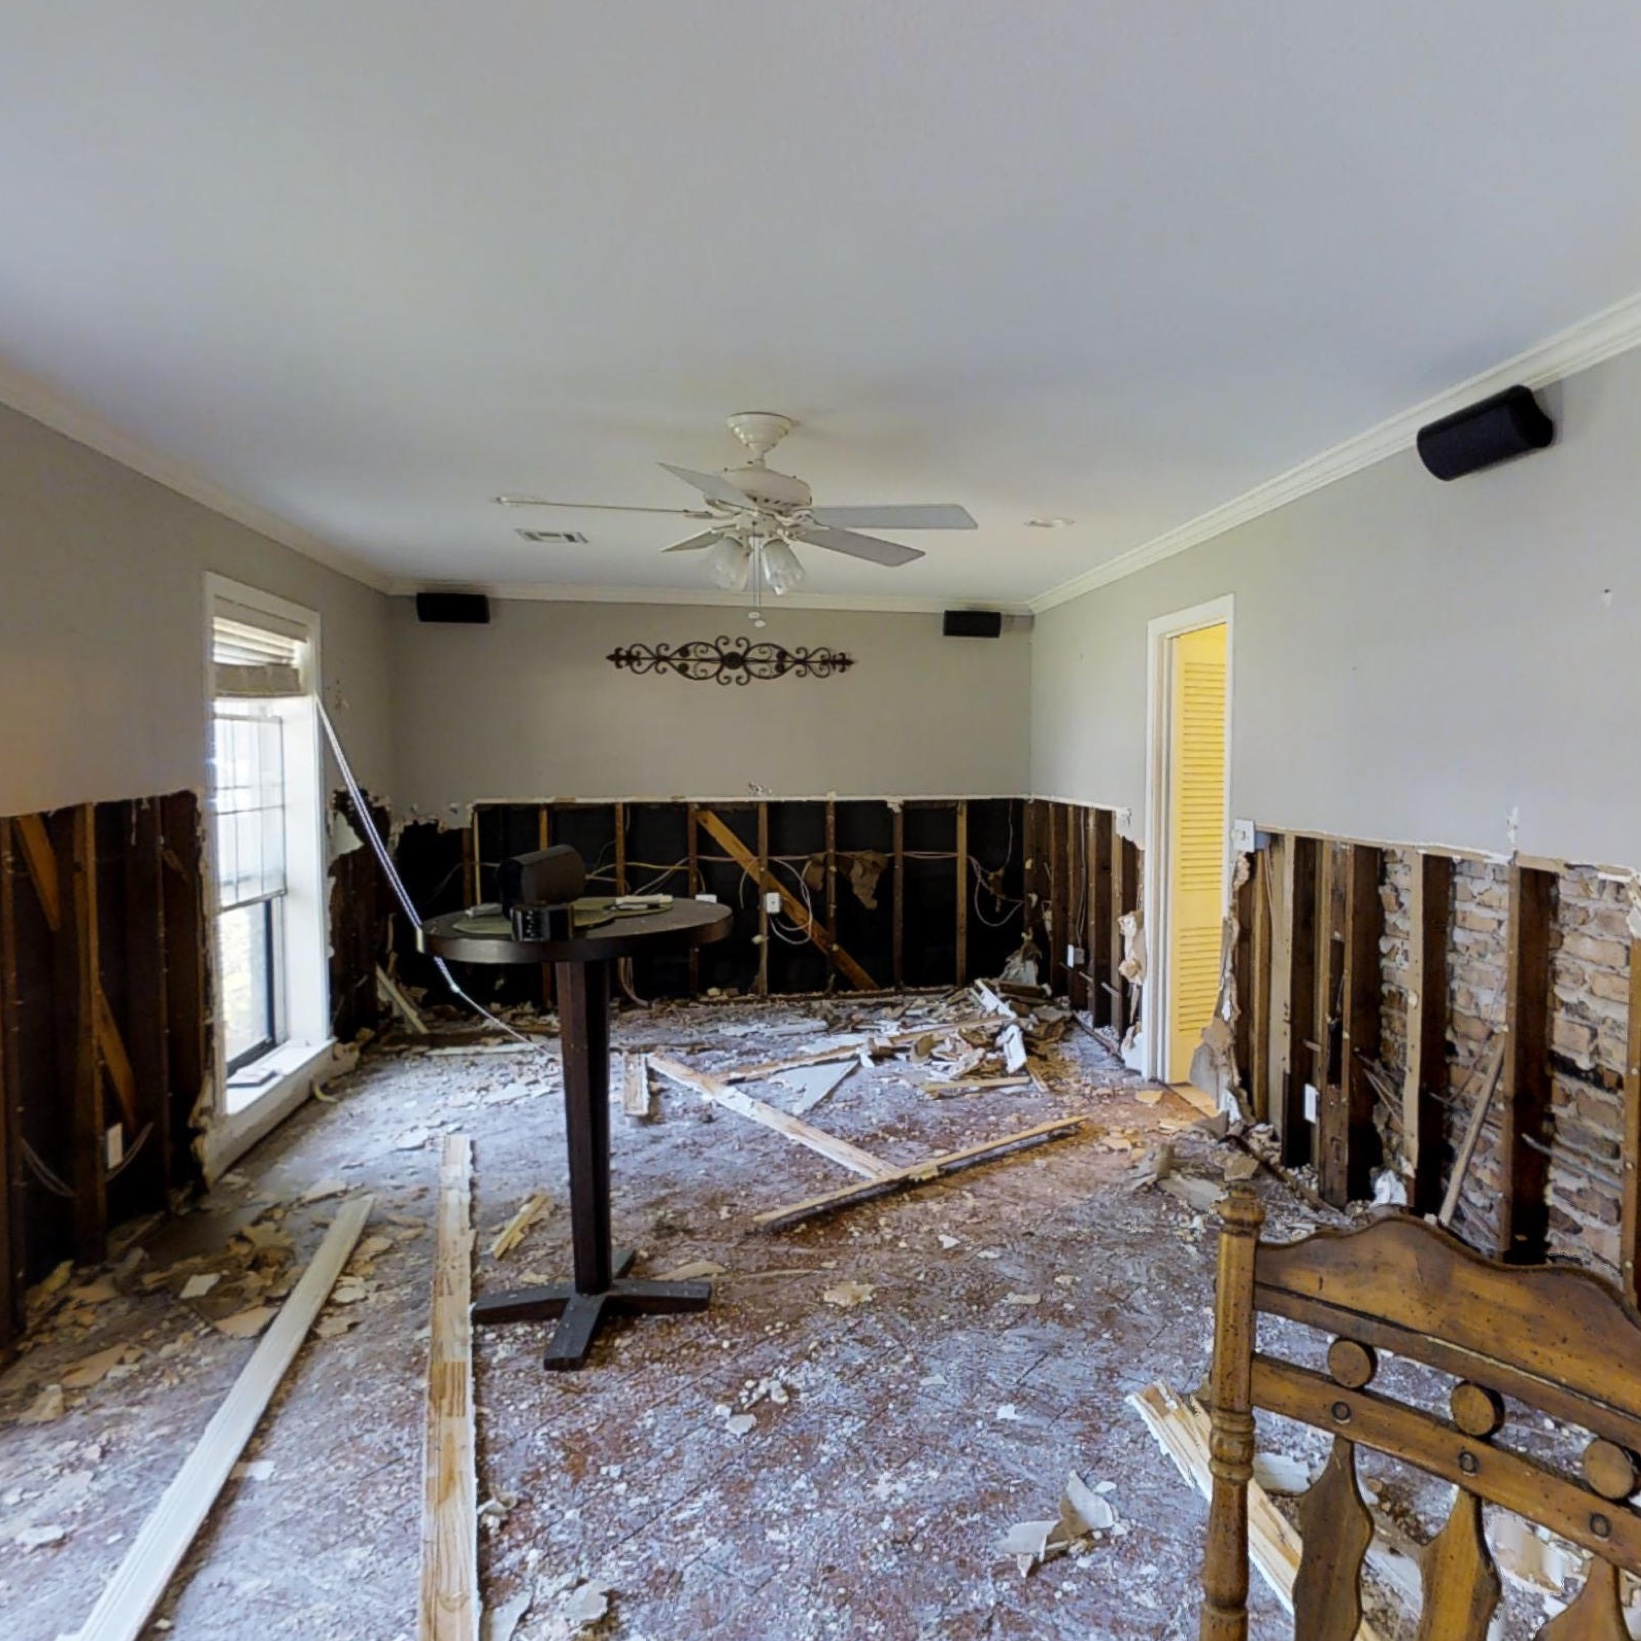 Wood planks and debris littered across a living room floor